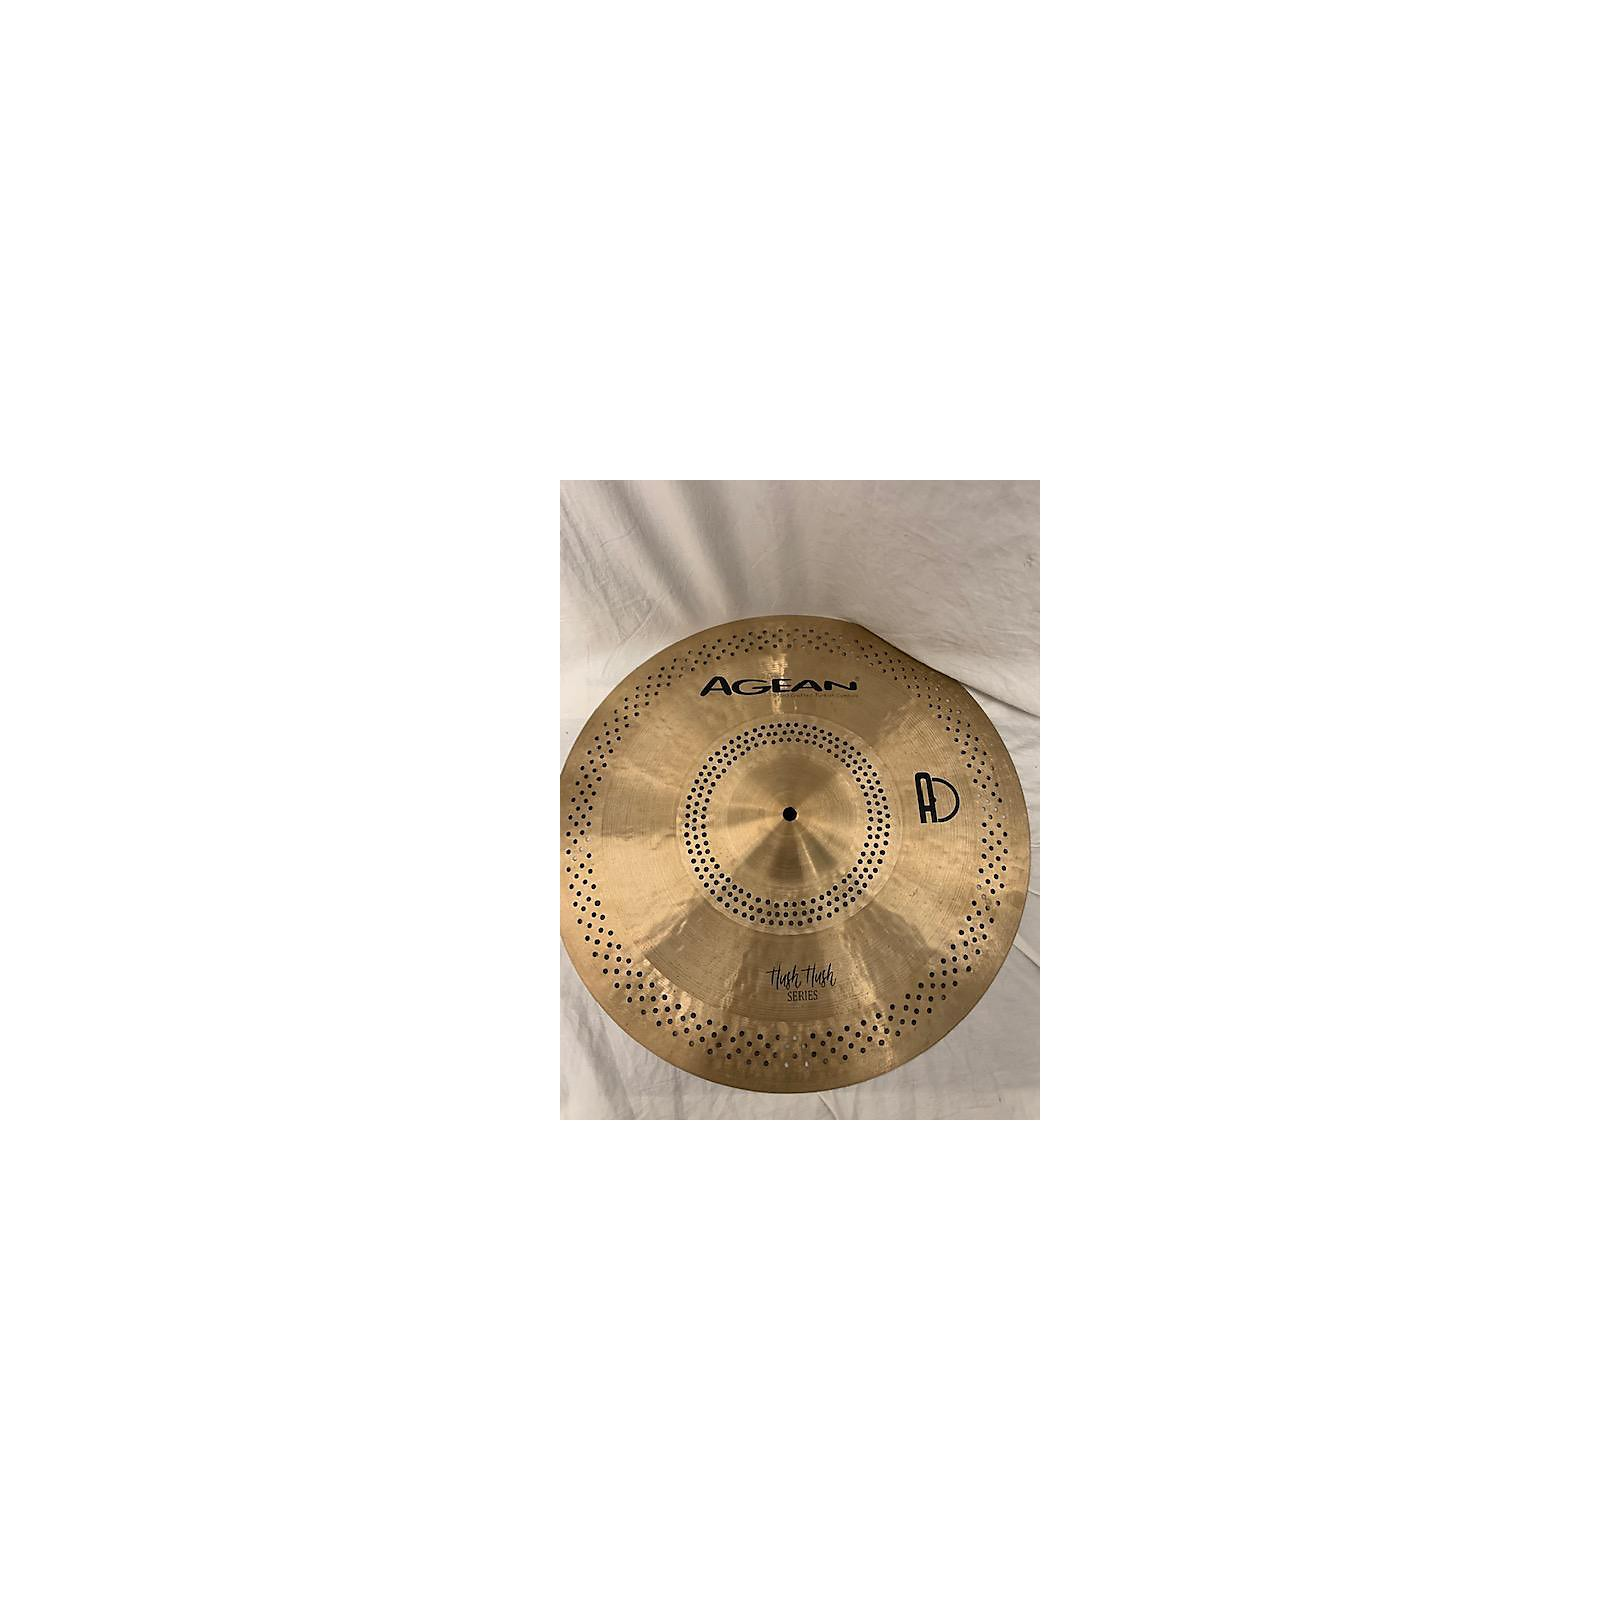 In Store Used Used Agean Hand Cafted Turkish Cymbals 18in Hush Hush Series Cymbal